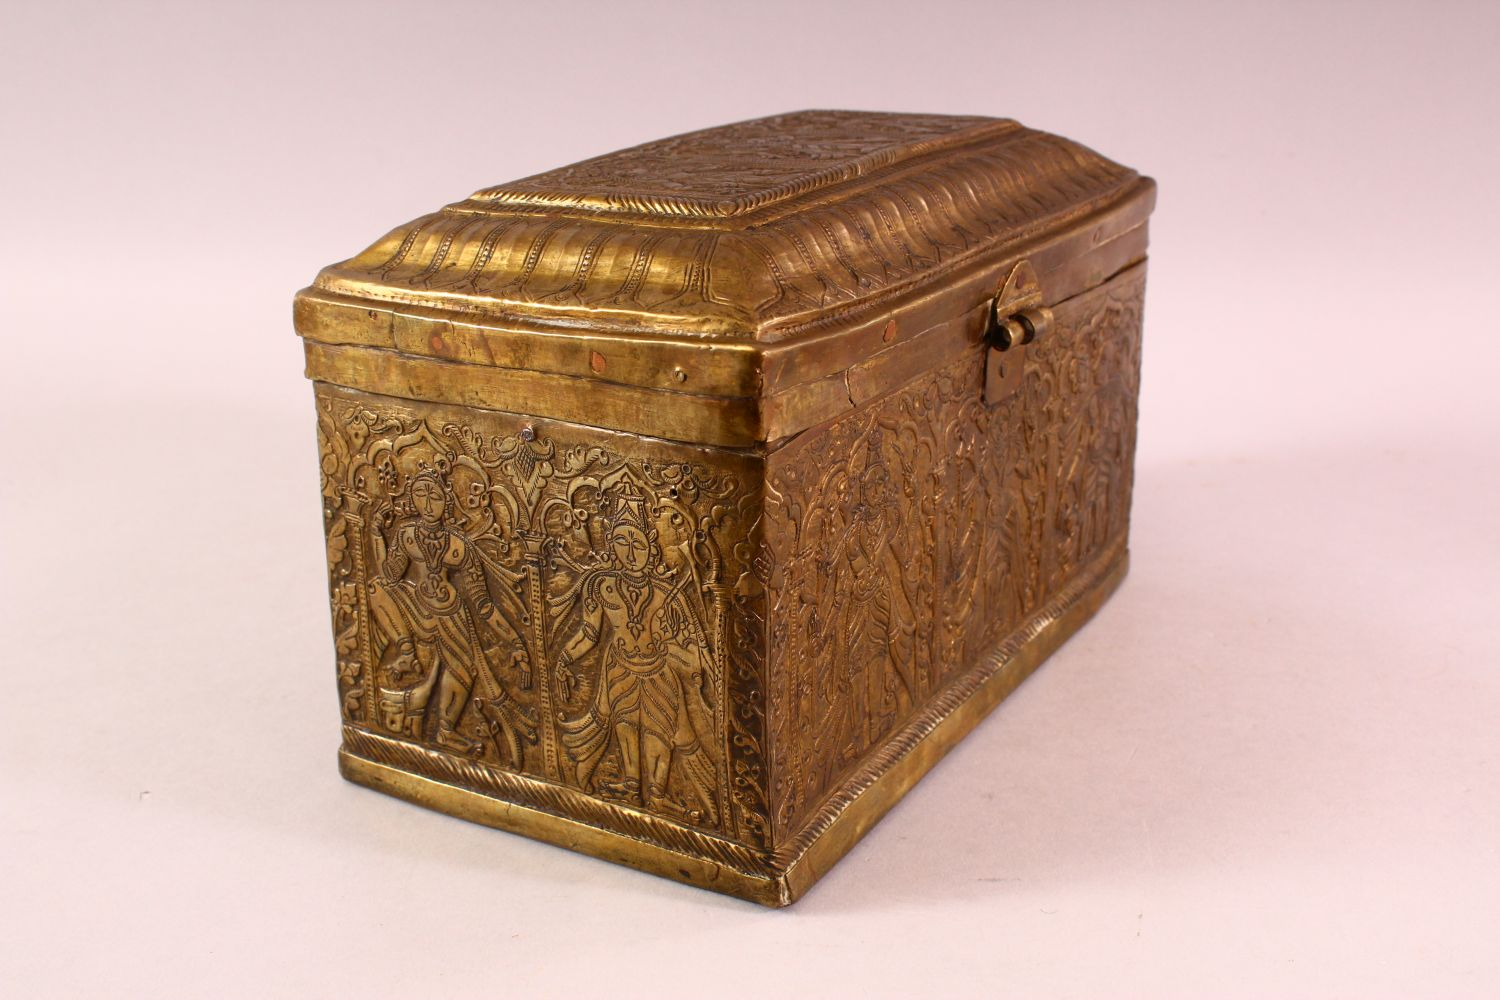 A FINE 18TH CENTURY SOUTH INDIAN ENGRAVED BRASS CASKET depicting Hindu gods, 26cm long, 16cm high, - Image 3 of 6